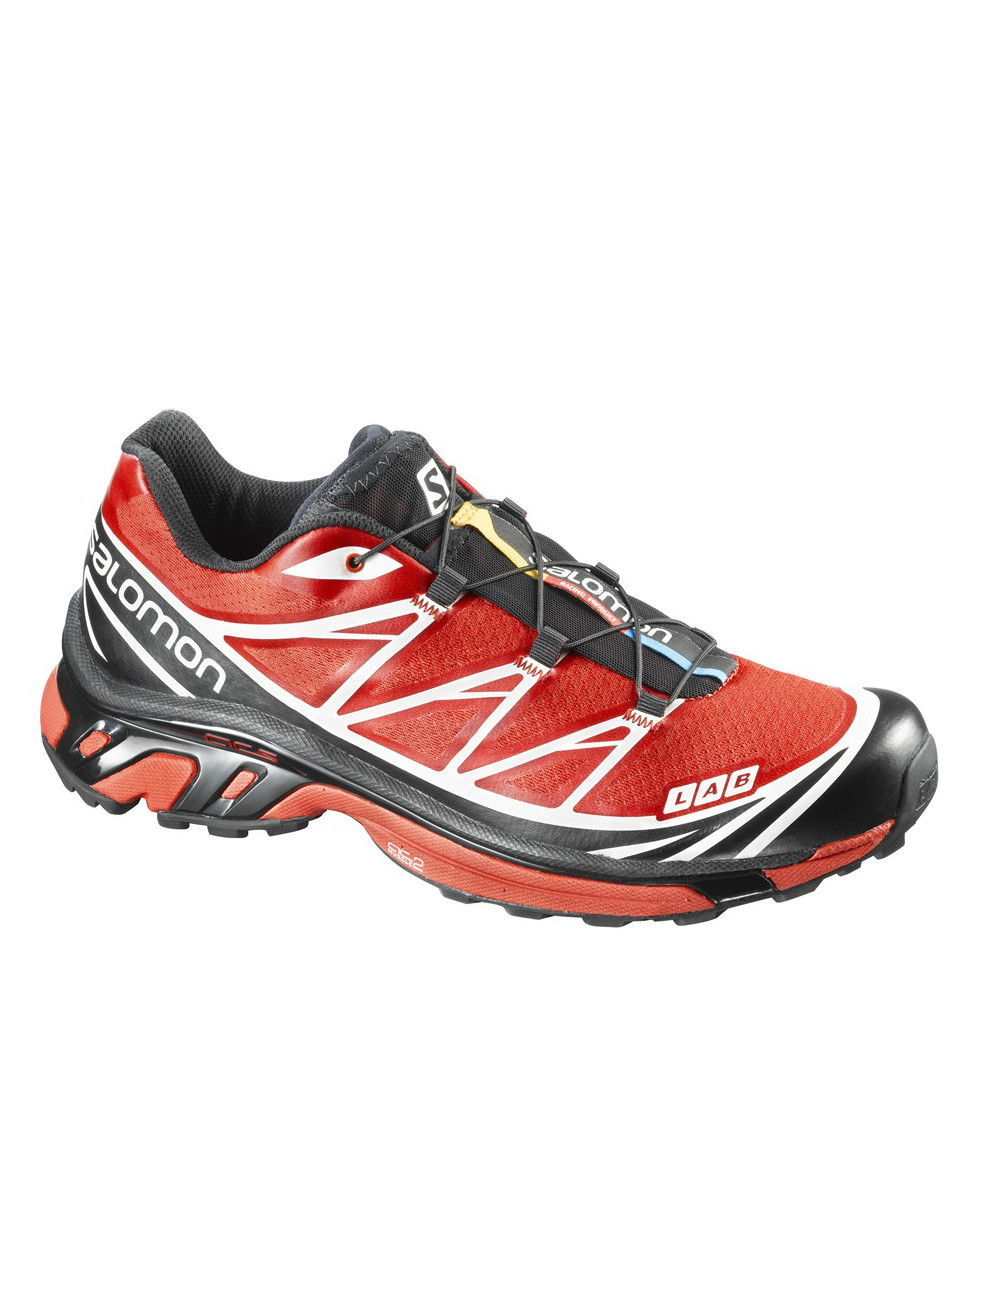 Salomon S-LAB XT 6 (354563)